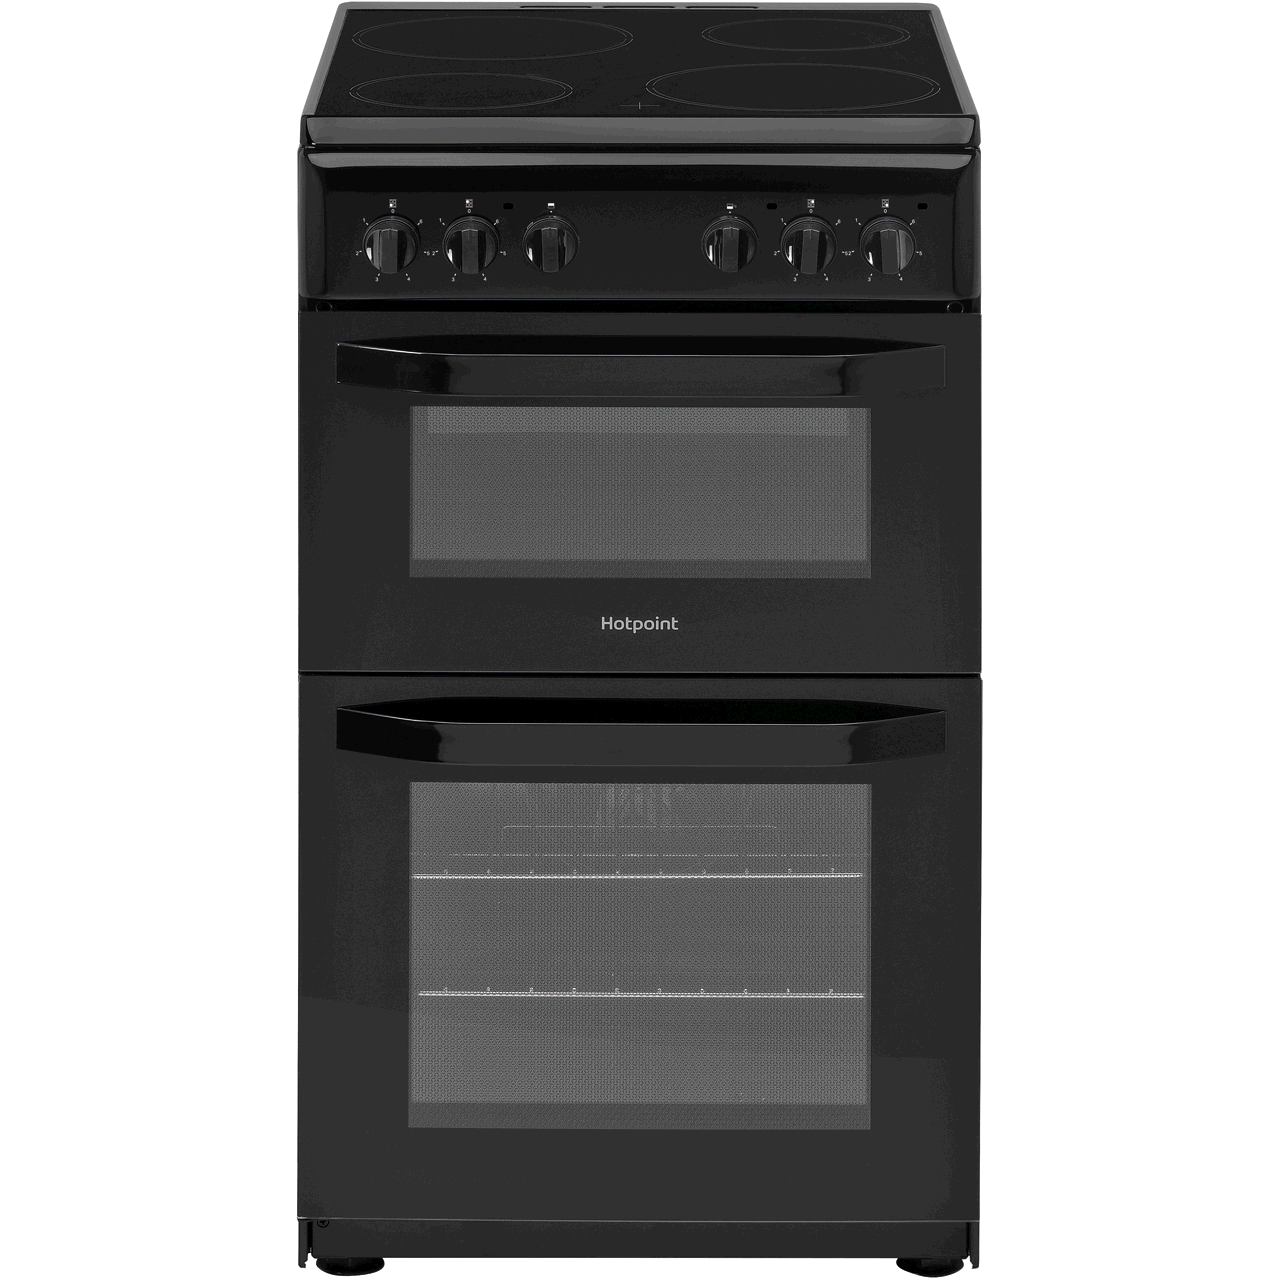 Hotpoint Cloe HD5V92KCB 50cm Electric Cooker with Ceramic Hob - Black - B Rated